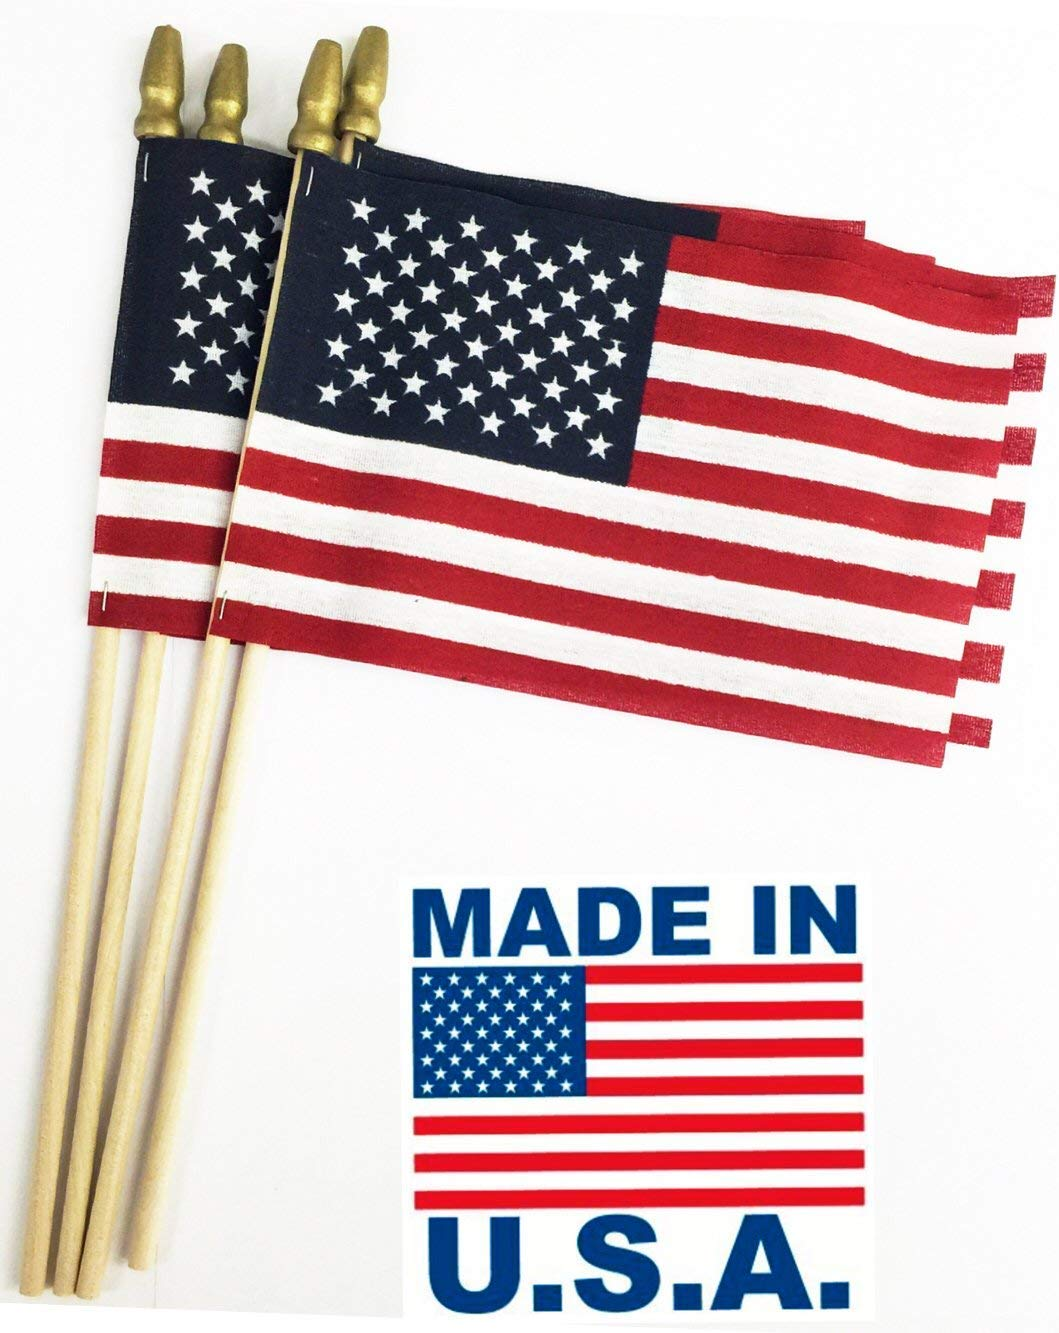 GIFTEXPRESS Set of 12, Proudly Made in U.S.A. Small American Flags 4x6 Inch/Small US Flag/Mini American Stick Flag/American Hand Held Stick Flags Spear Top